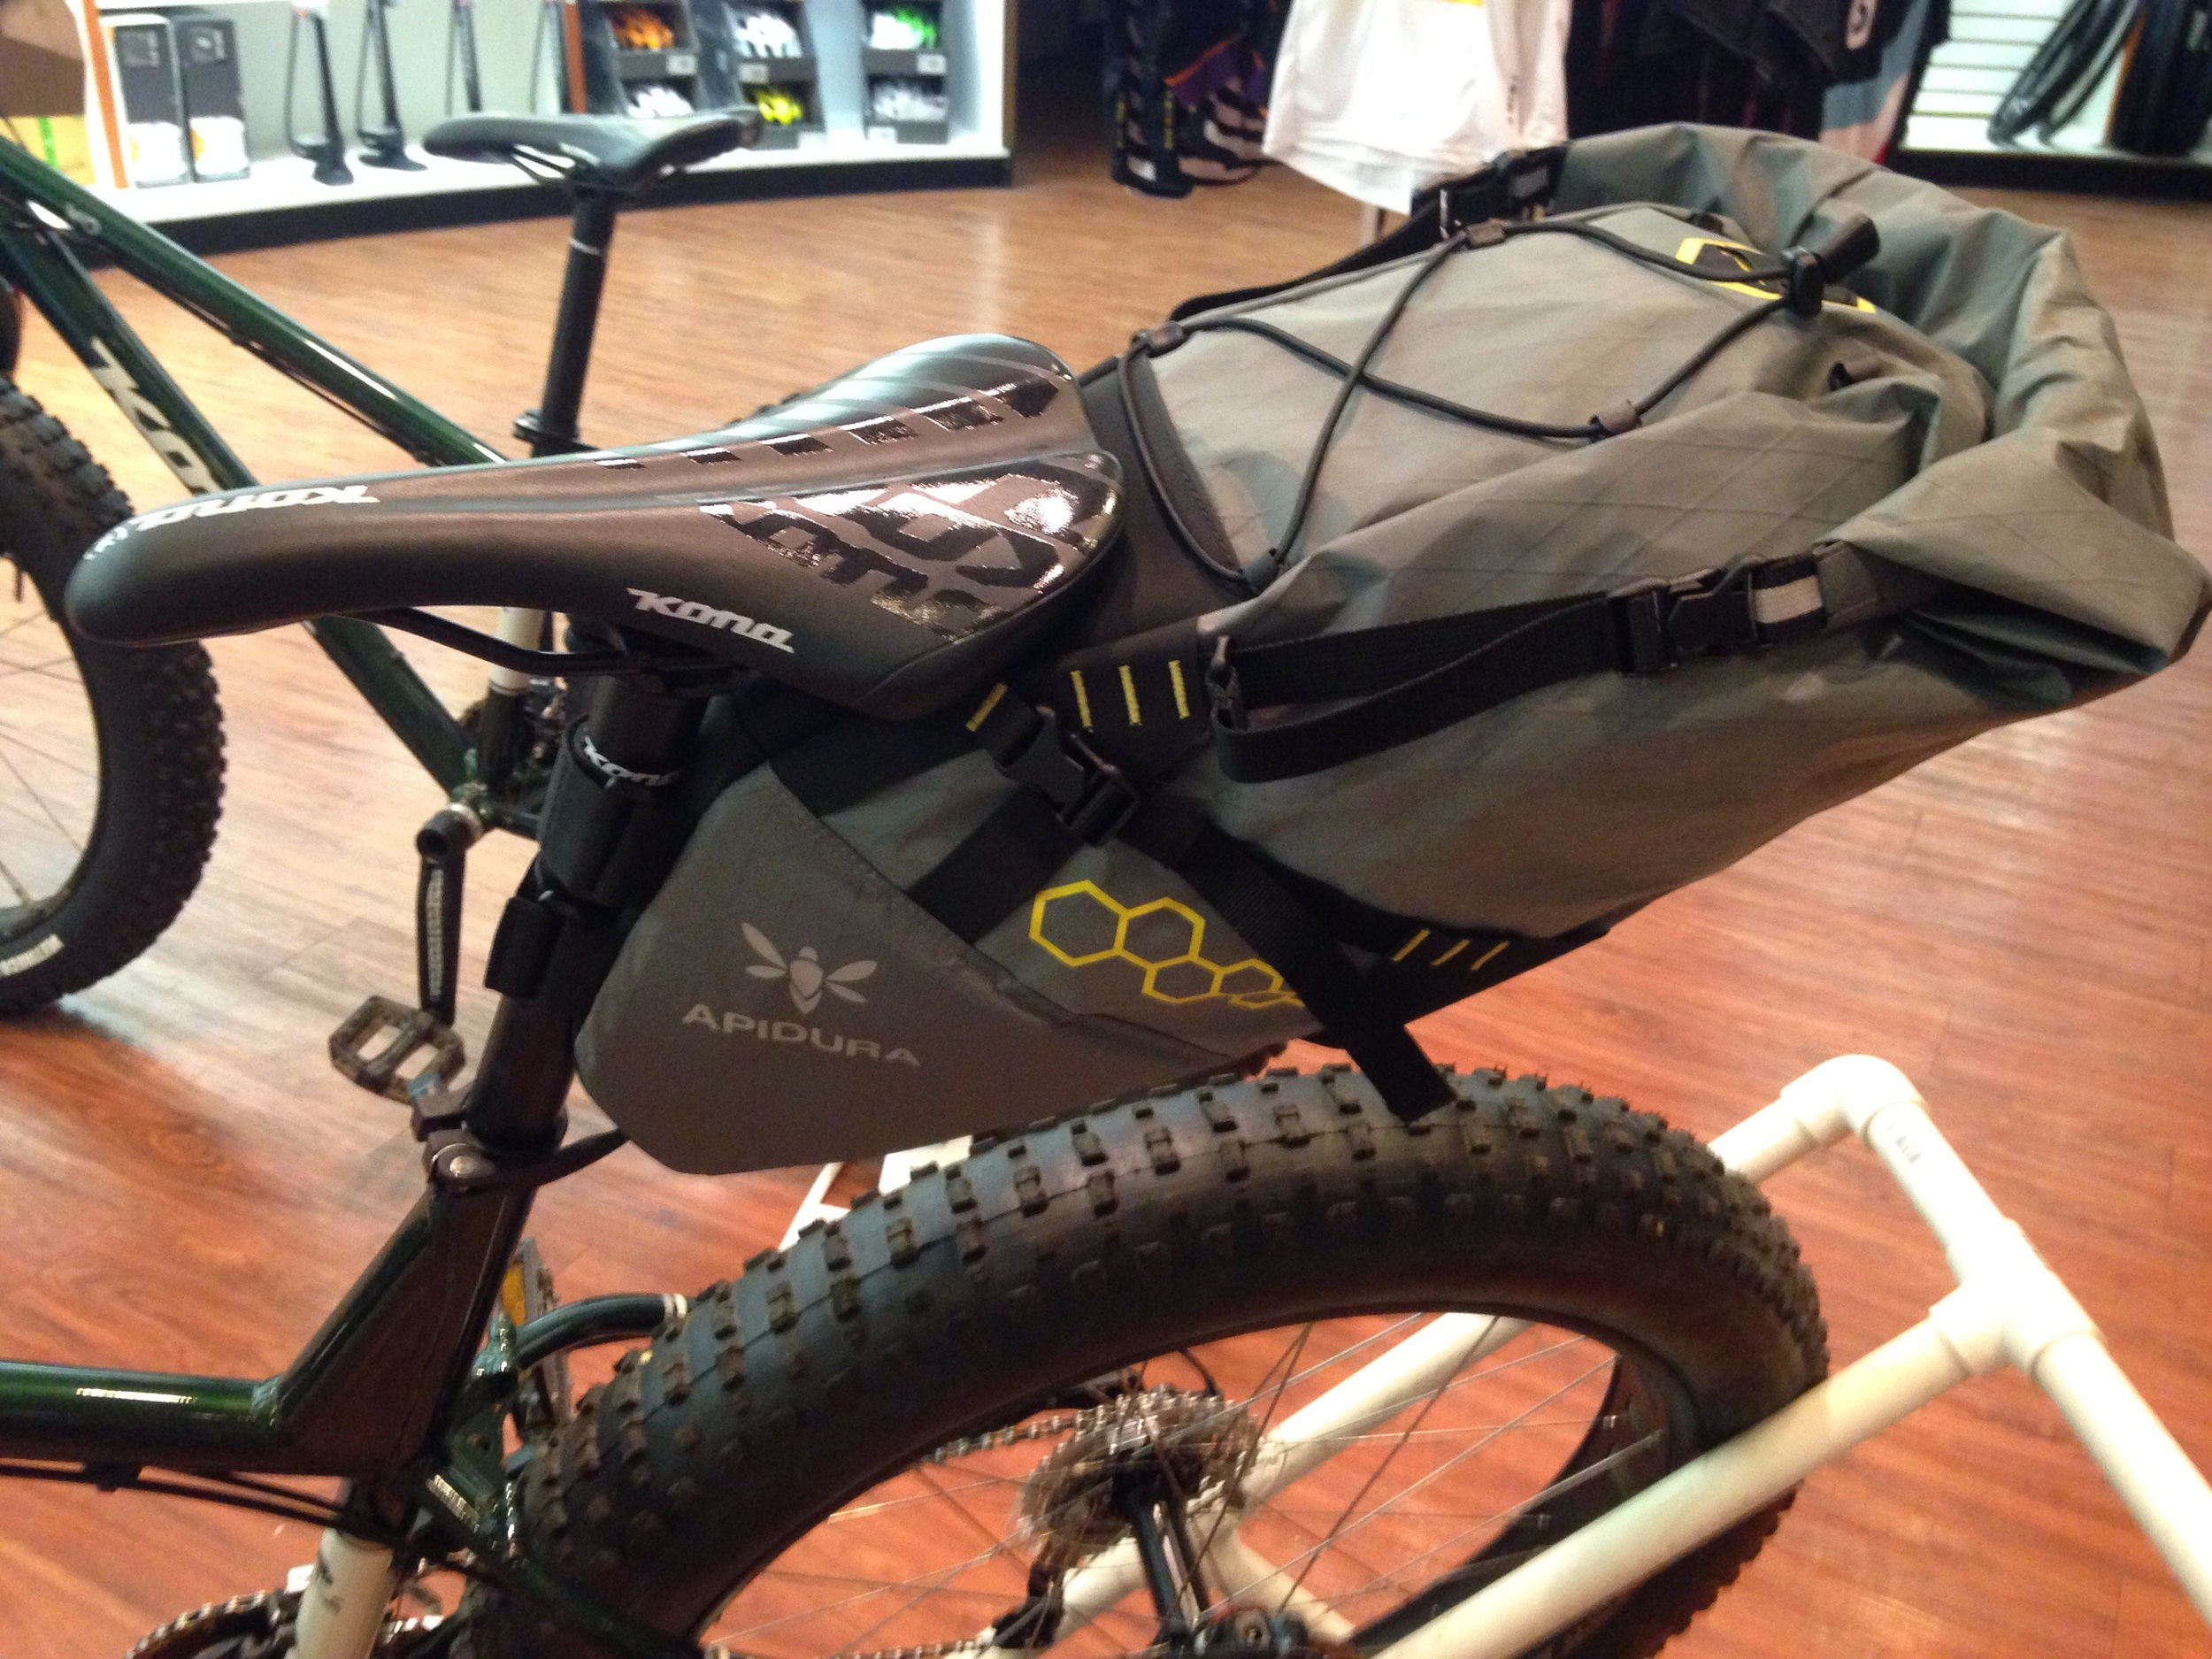 Apidura seatbag. Waterproof and capable of carrying gear or clothing.